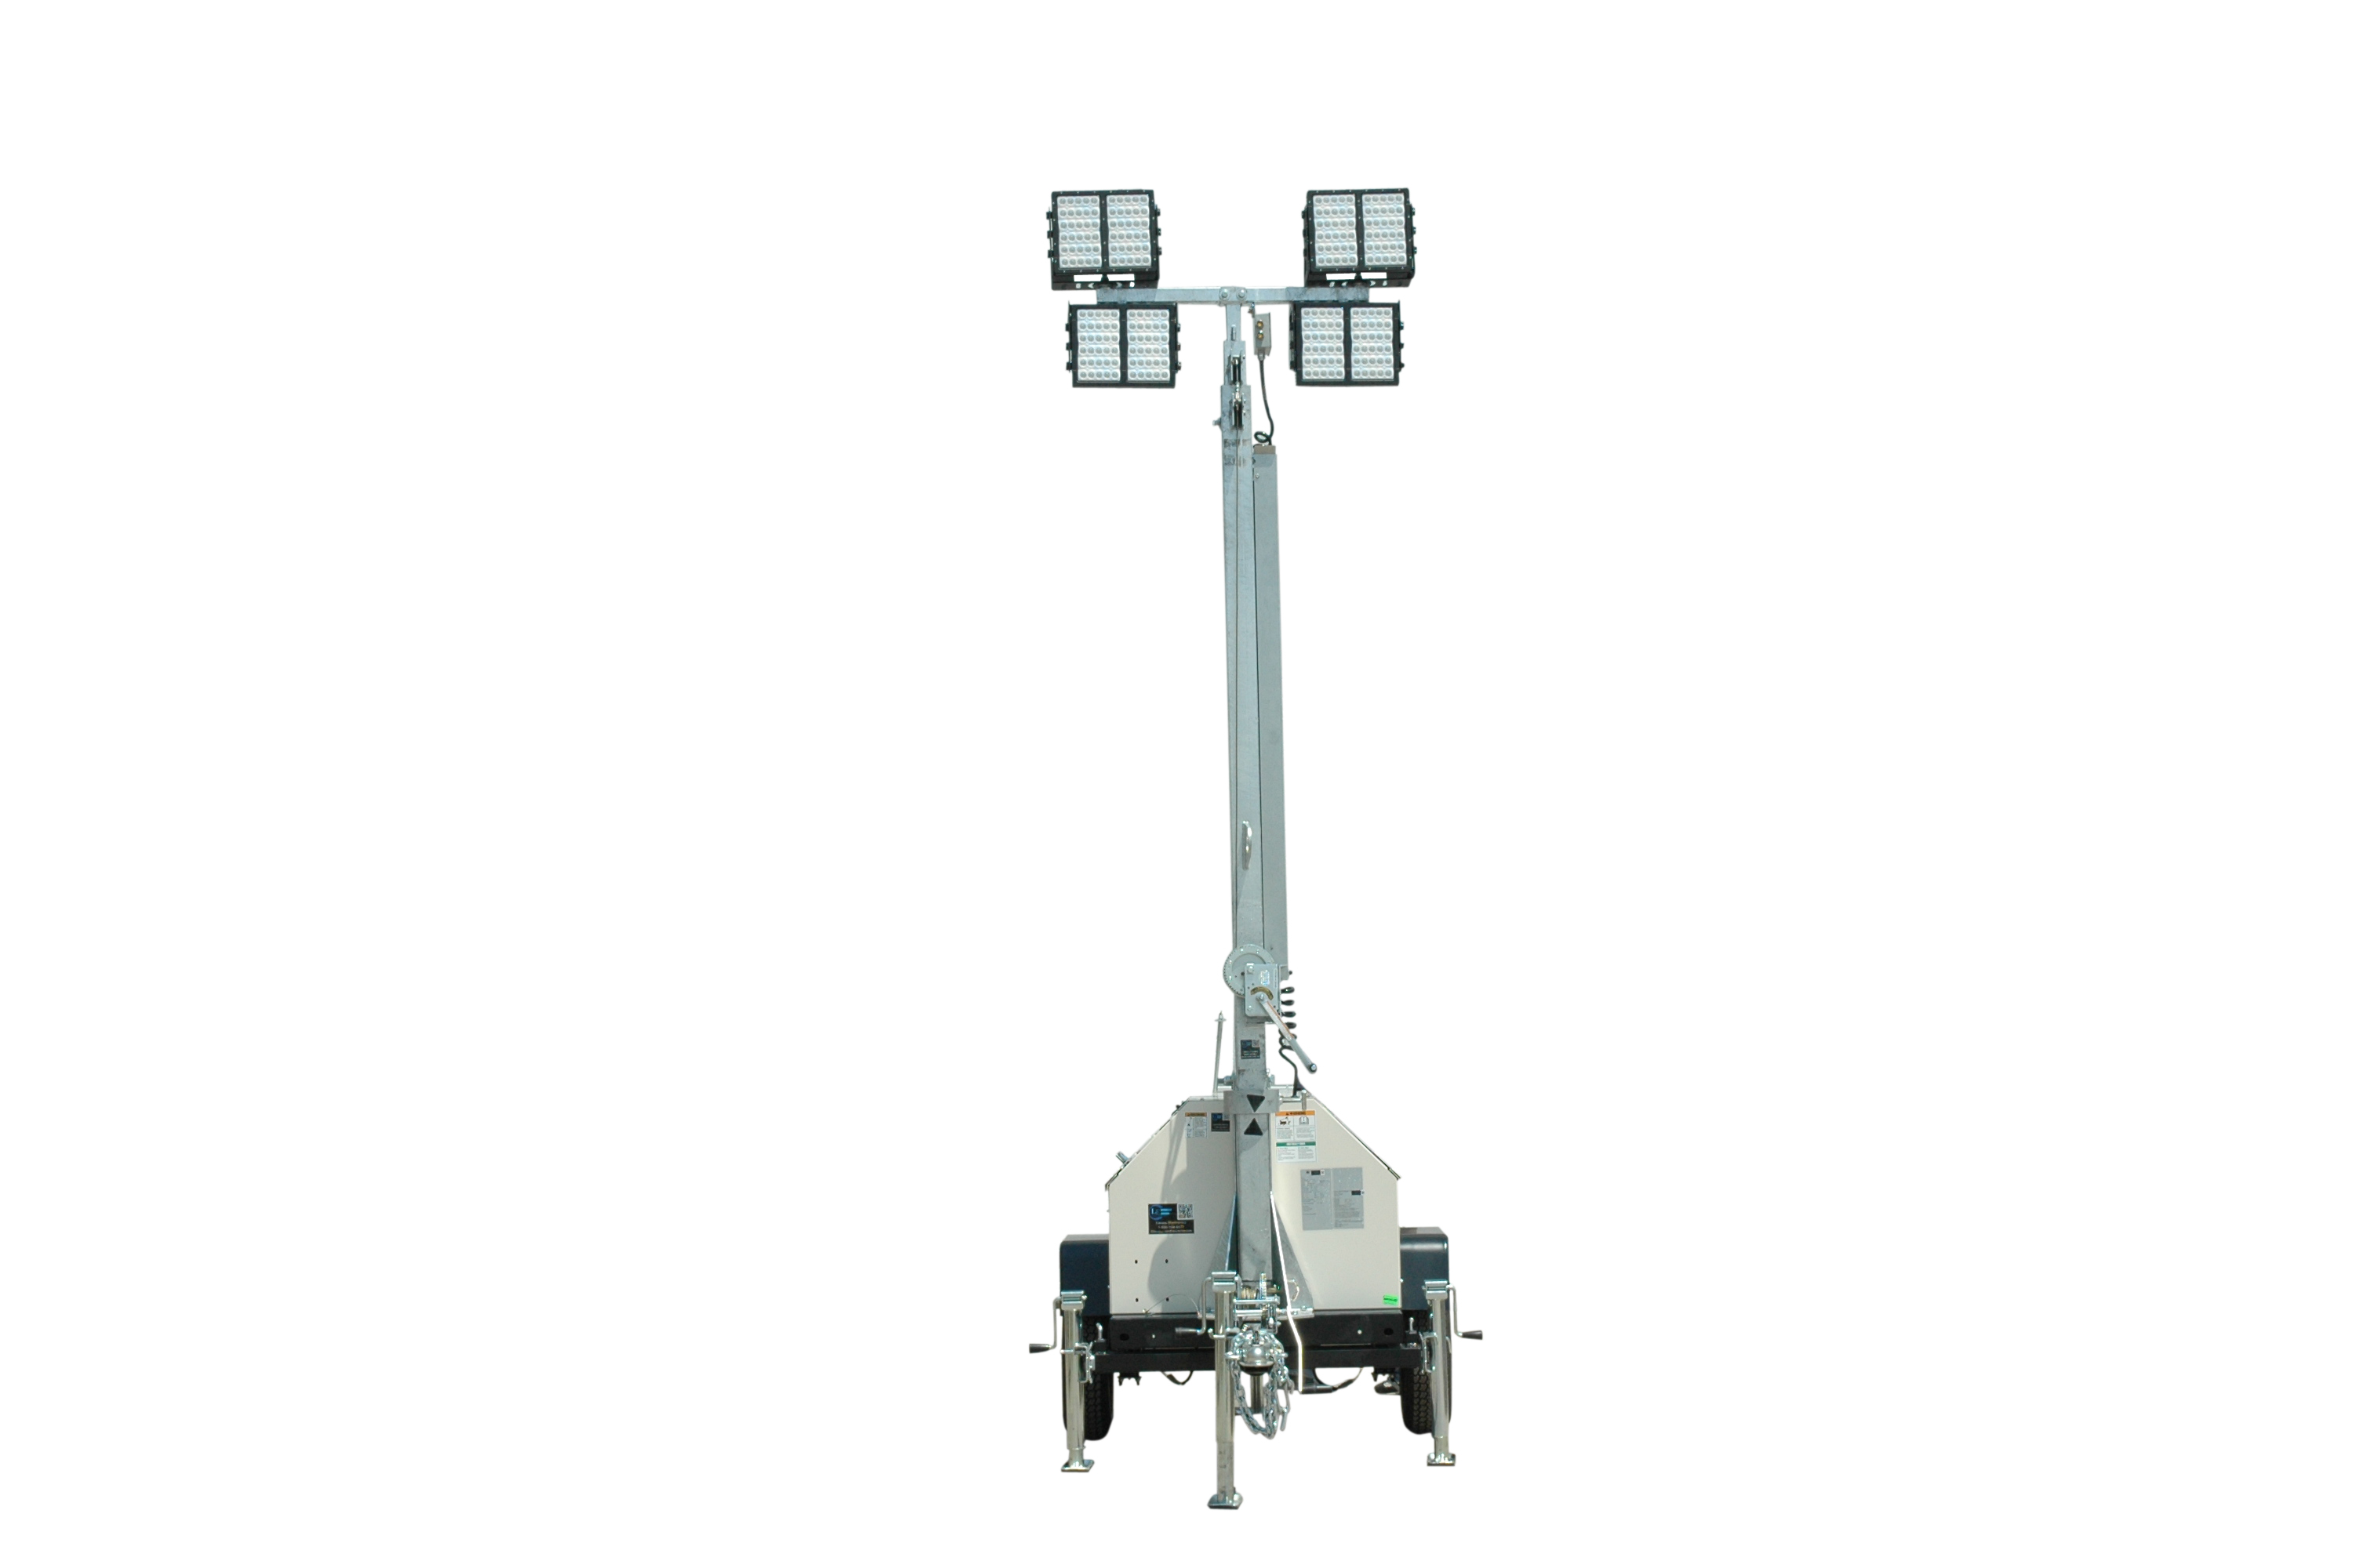 New Mobile Led Light Tower Withsel Powered Generator From Larson Electronics